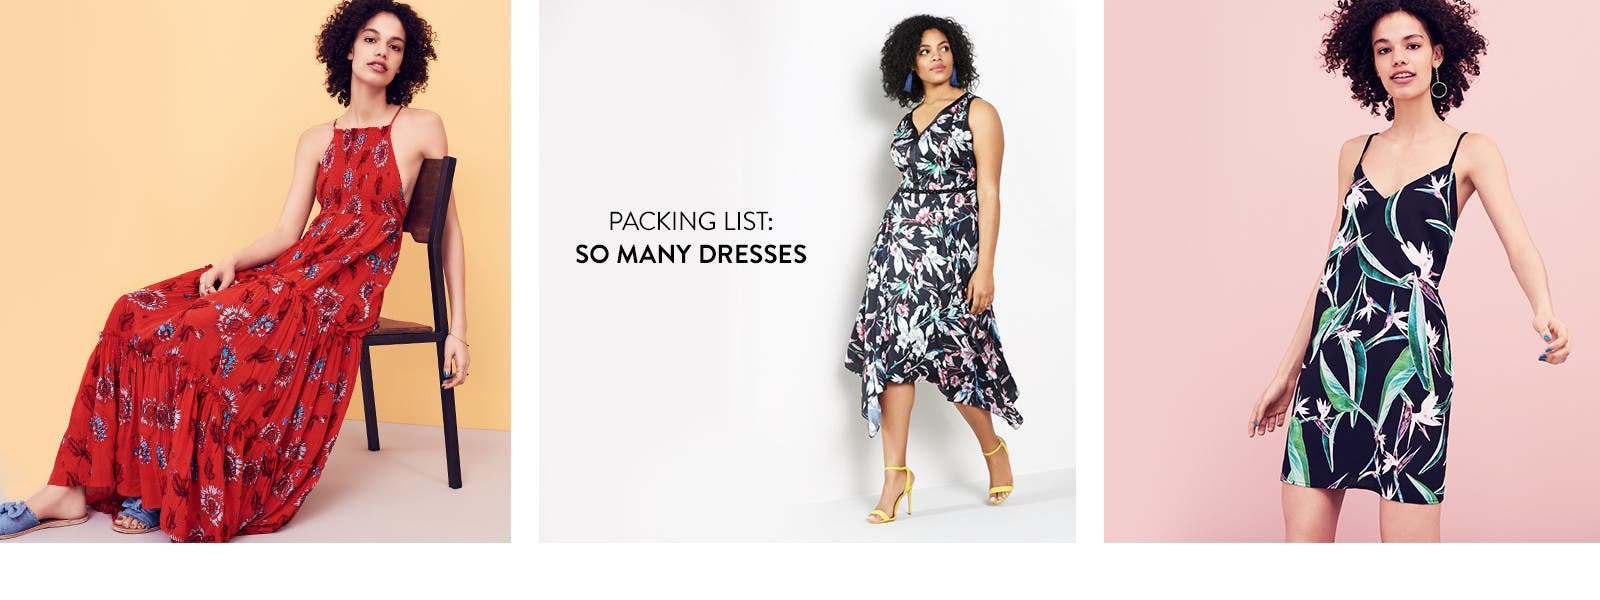 Packing list: so many dresses.